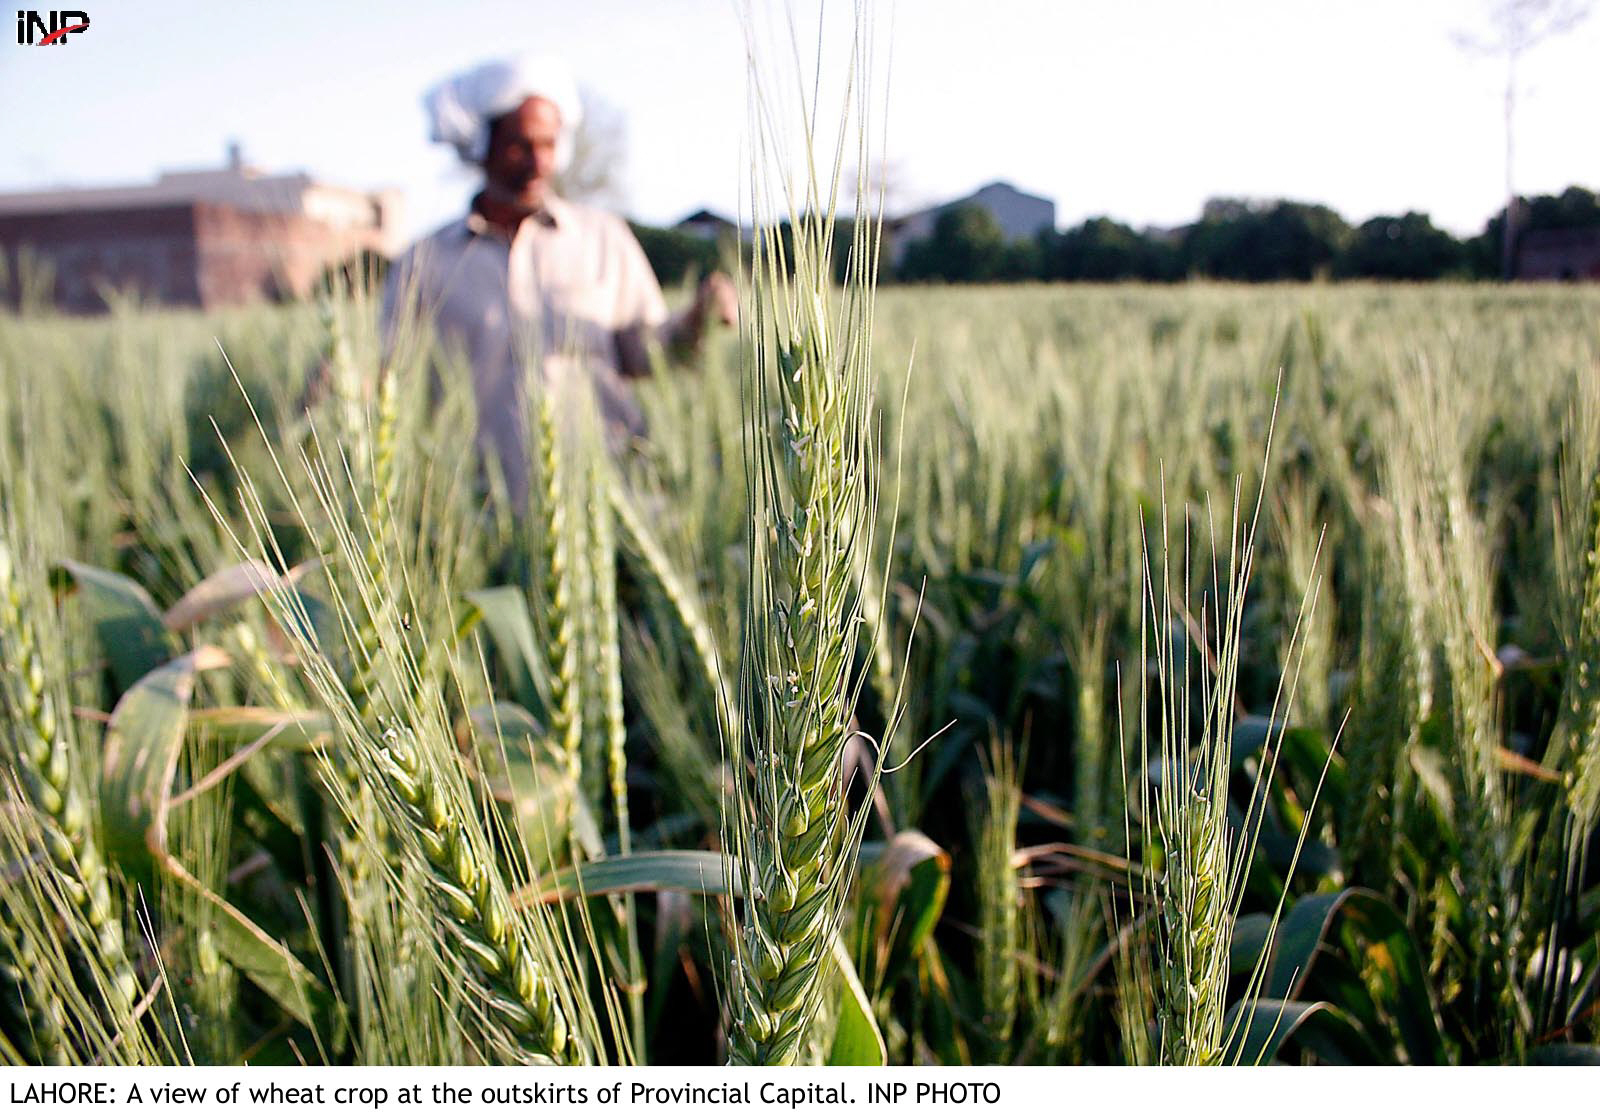 The representatives of the Kisaan Ittehad, Badin, urged upon the chief minister and the 'honest' officials of the irrigation department to take action against officials and influential landlords who are blocking water supply to the tail-end channels. PHOTO: INP